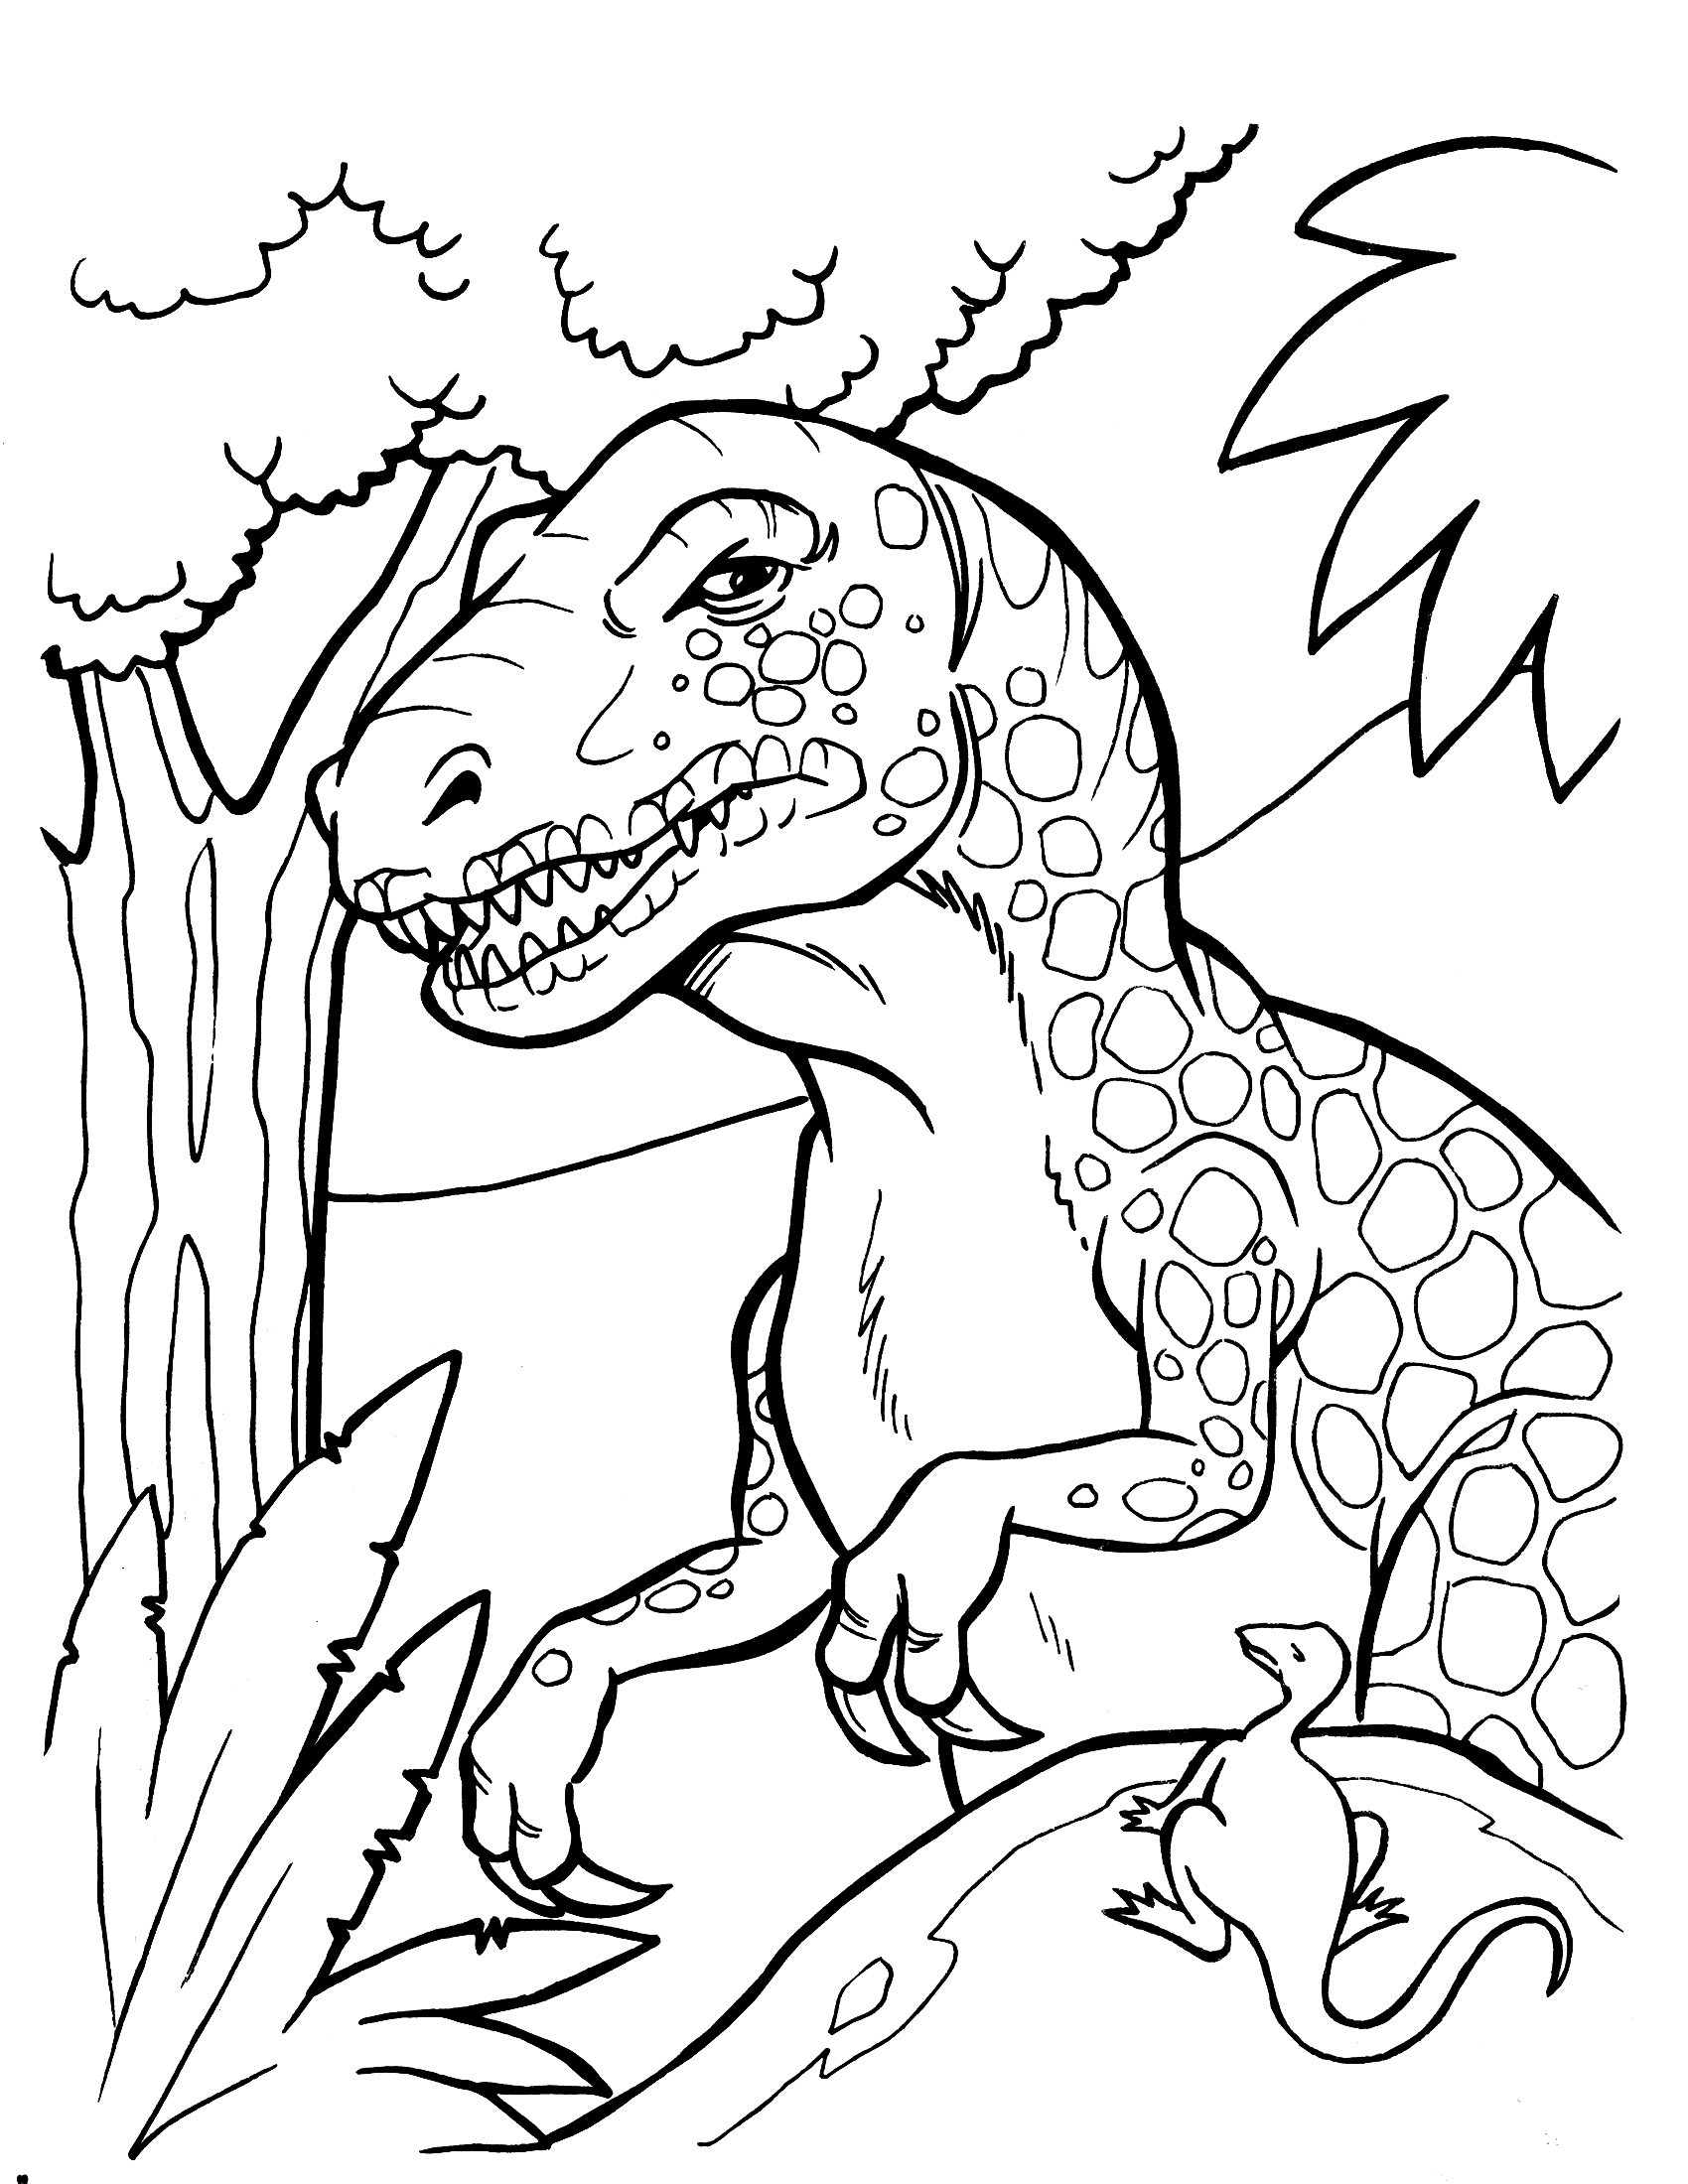 dinasour coloring pages the good dinosaur coloring page dinosaur coloring pages coloring dinasour pages